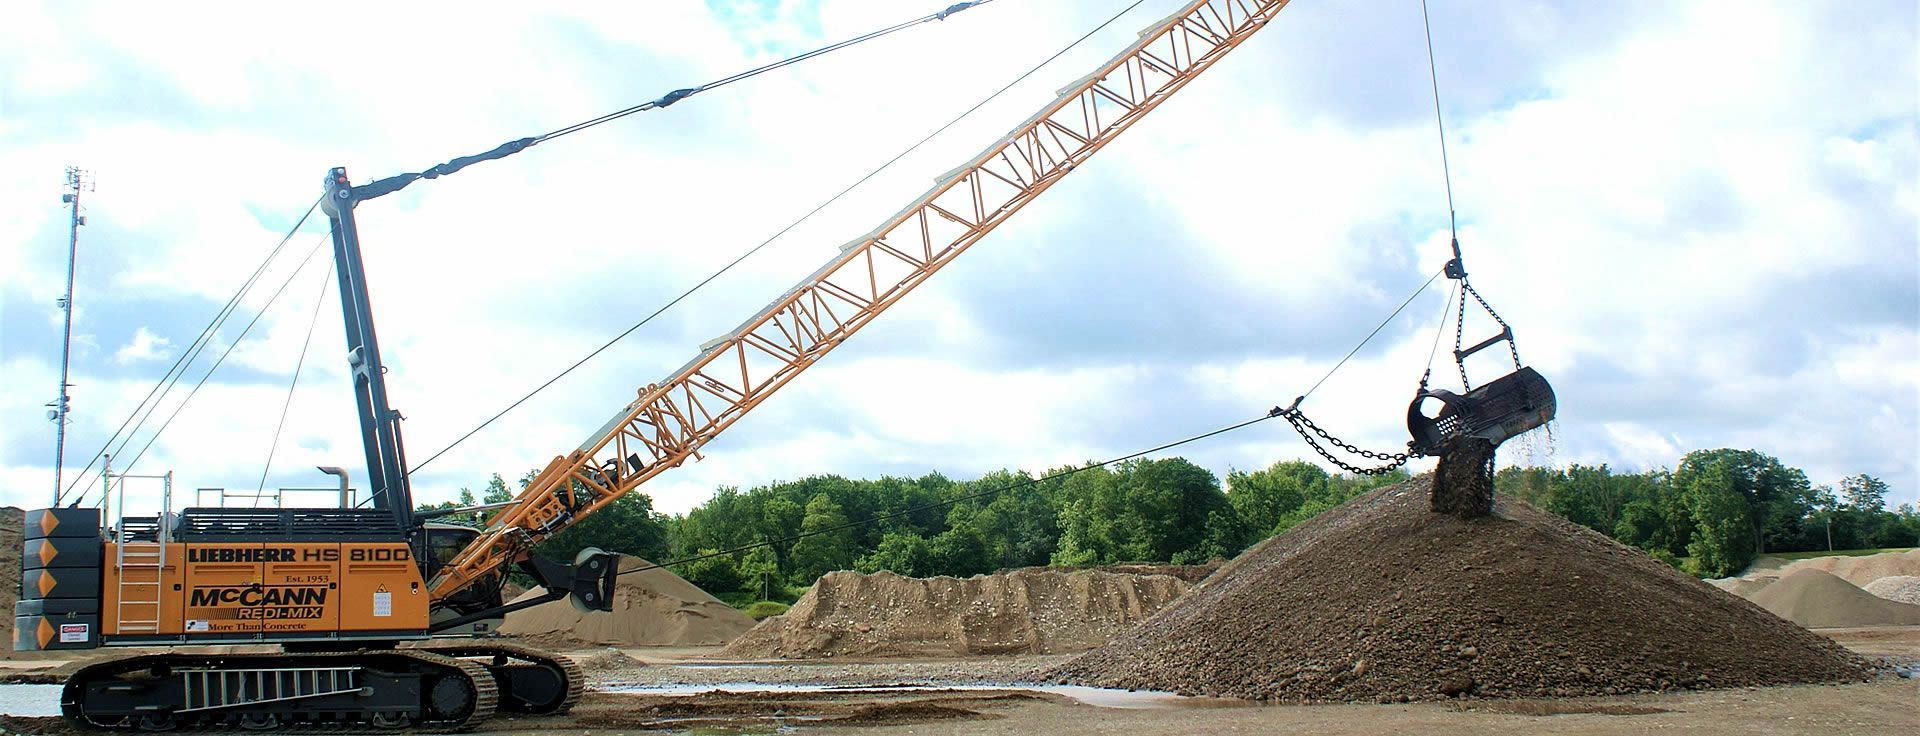 Dragline Moving Aggregate (improved)